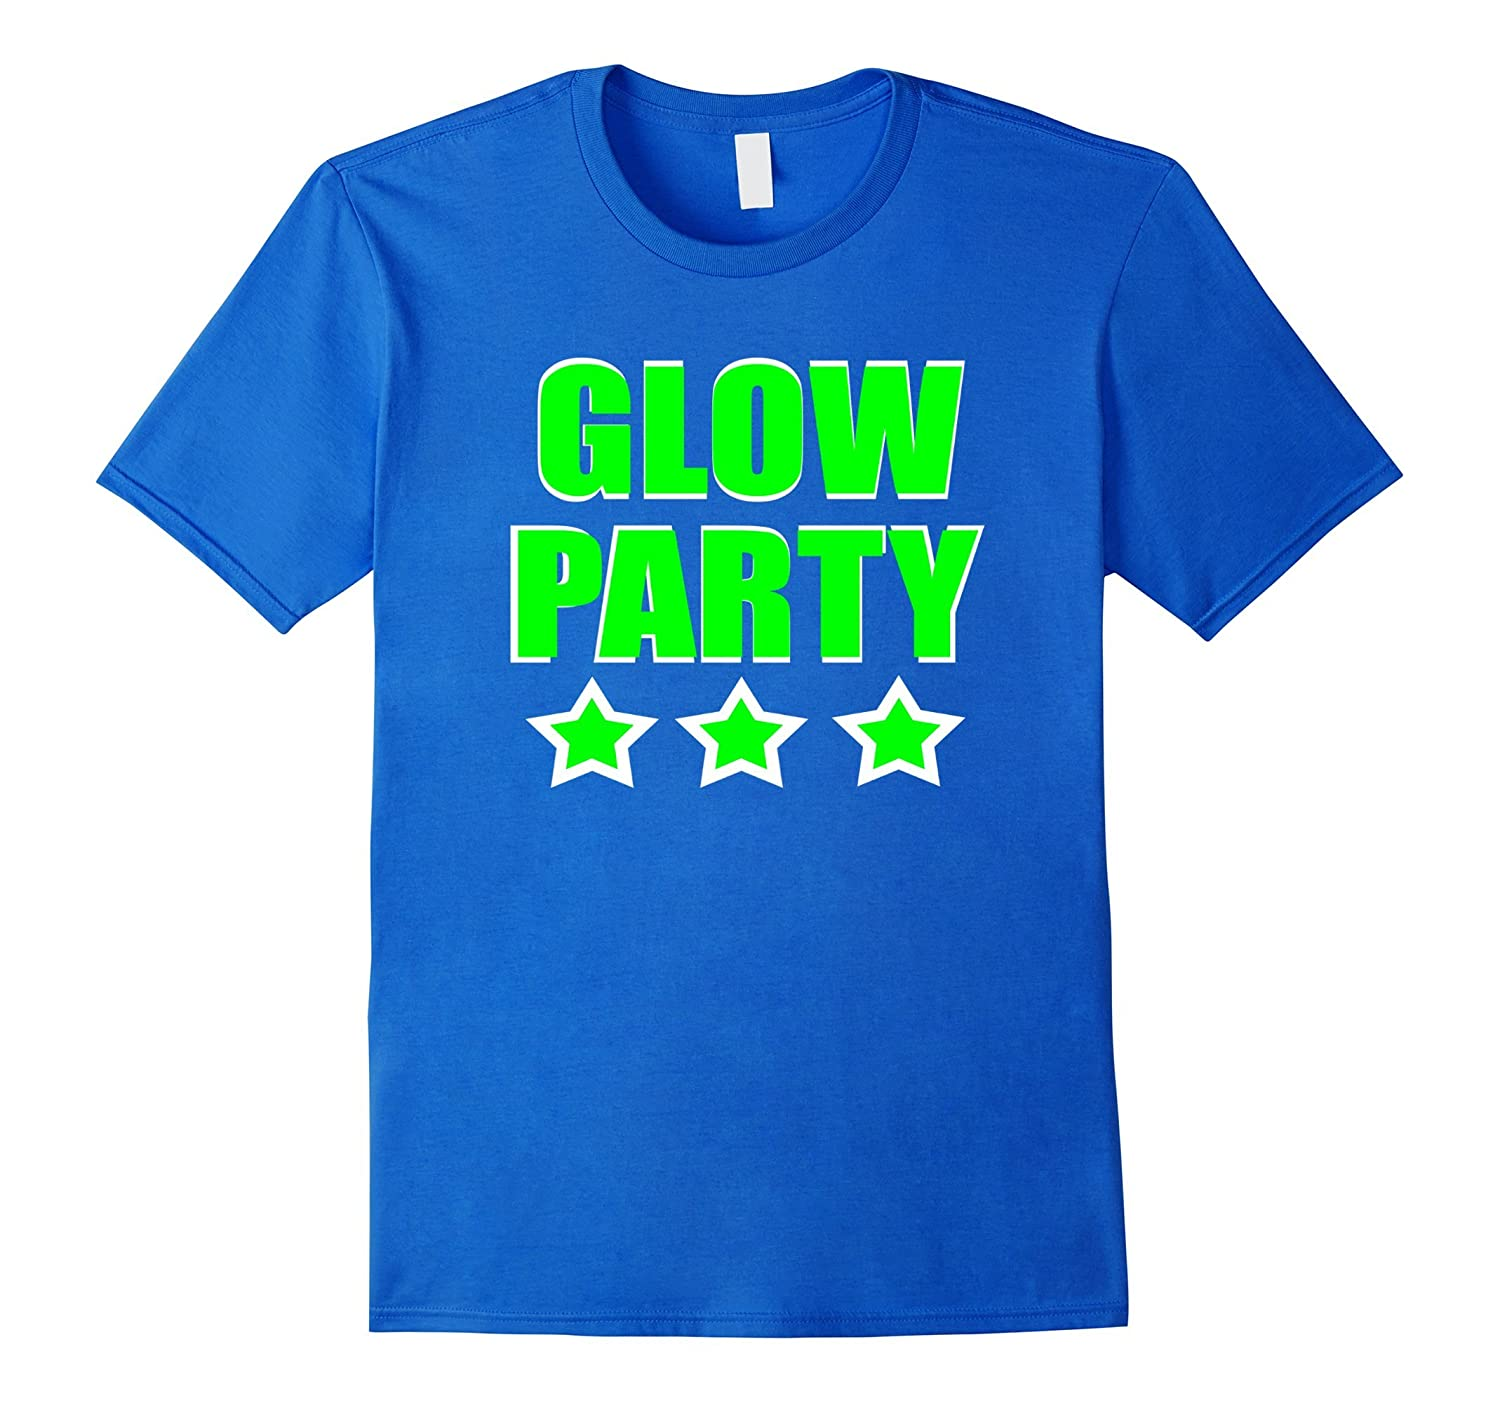 Neon Green Party Shirt For Rave Glow Birthday TH